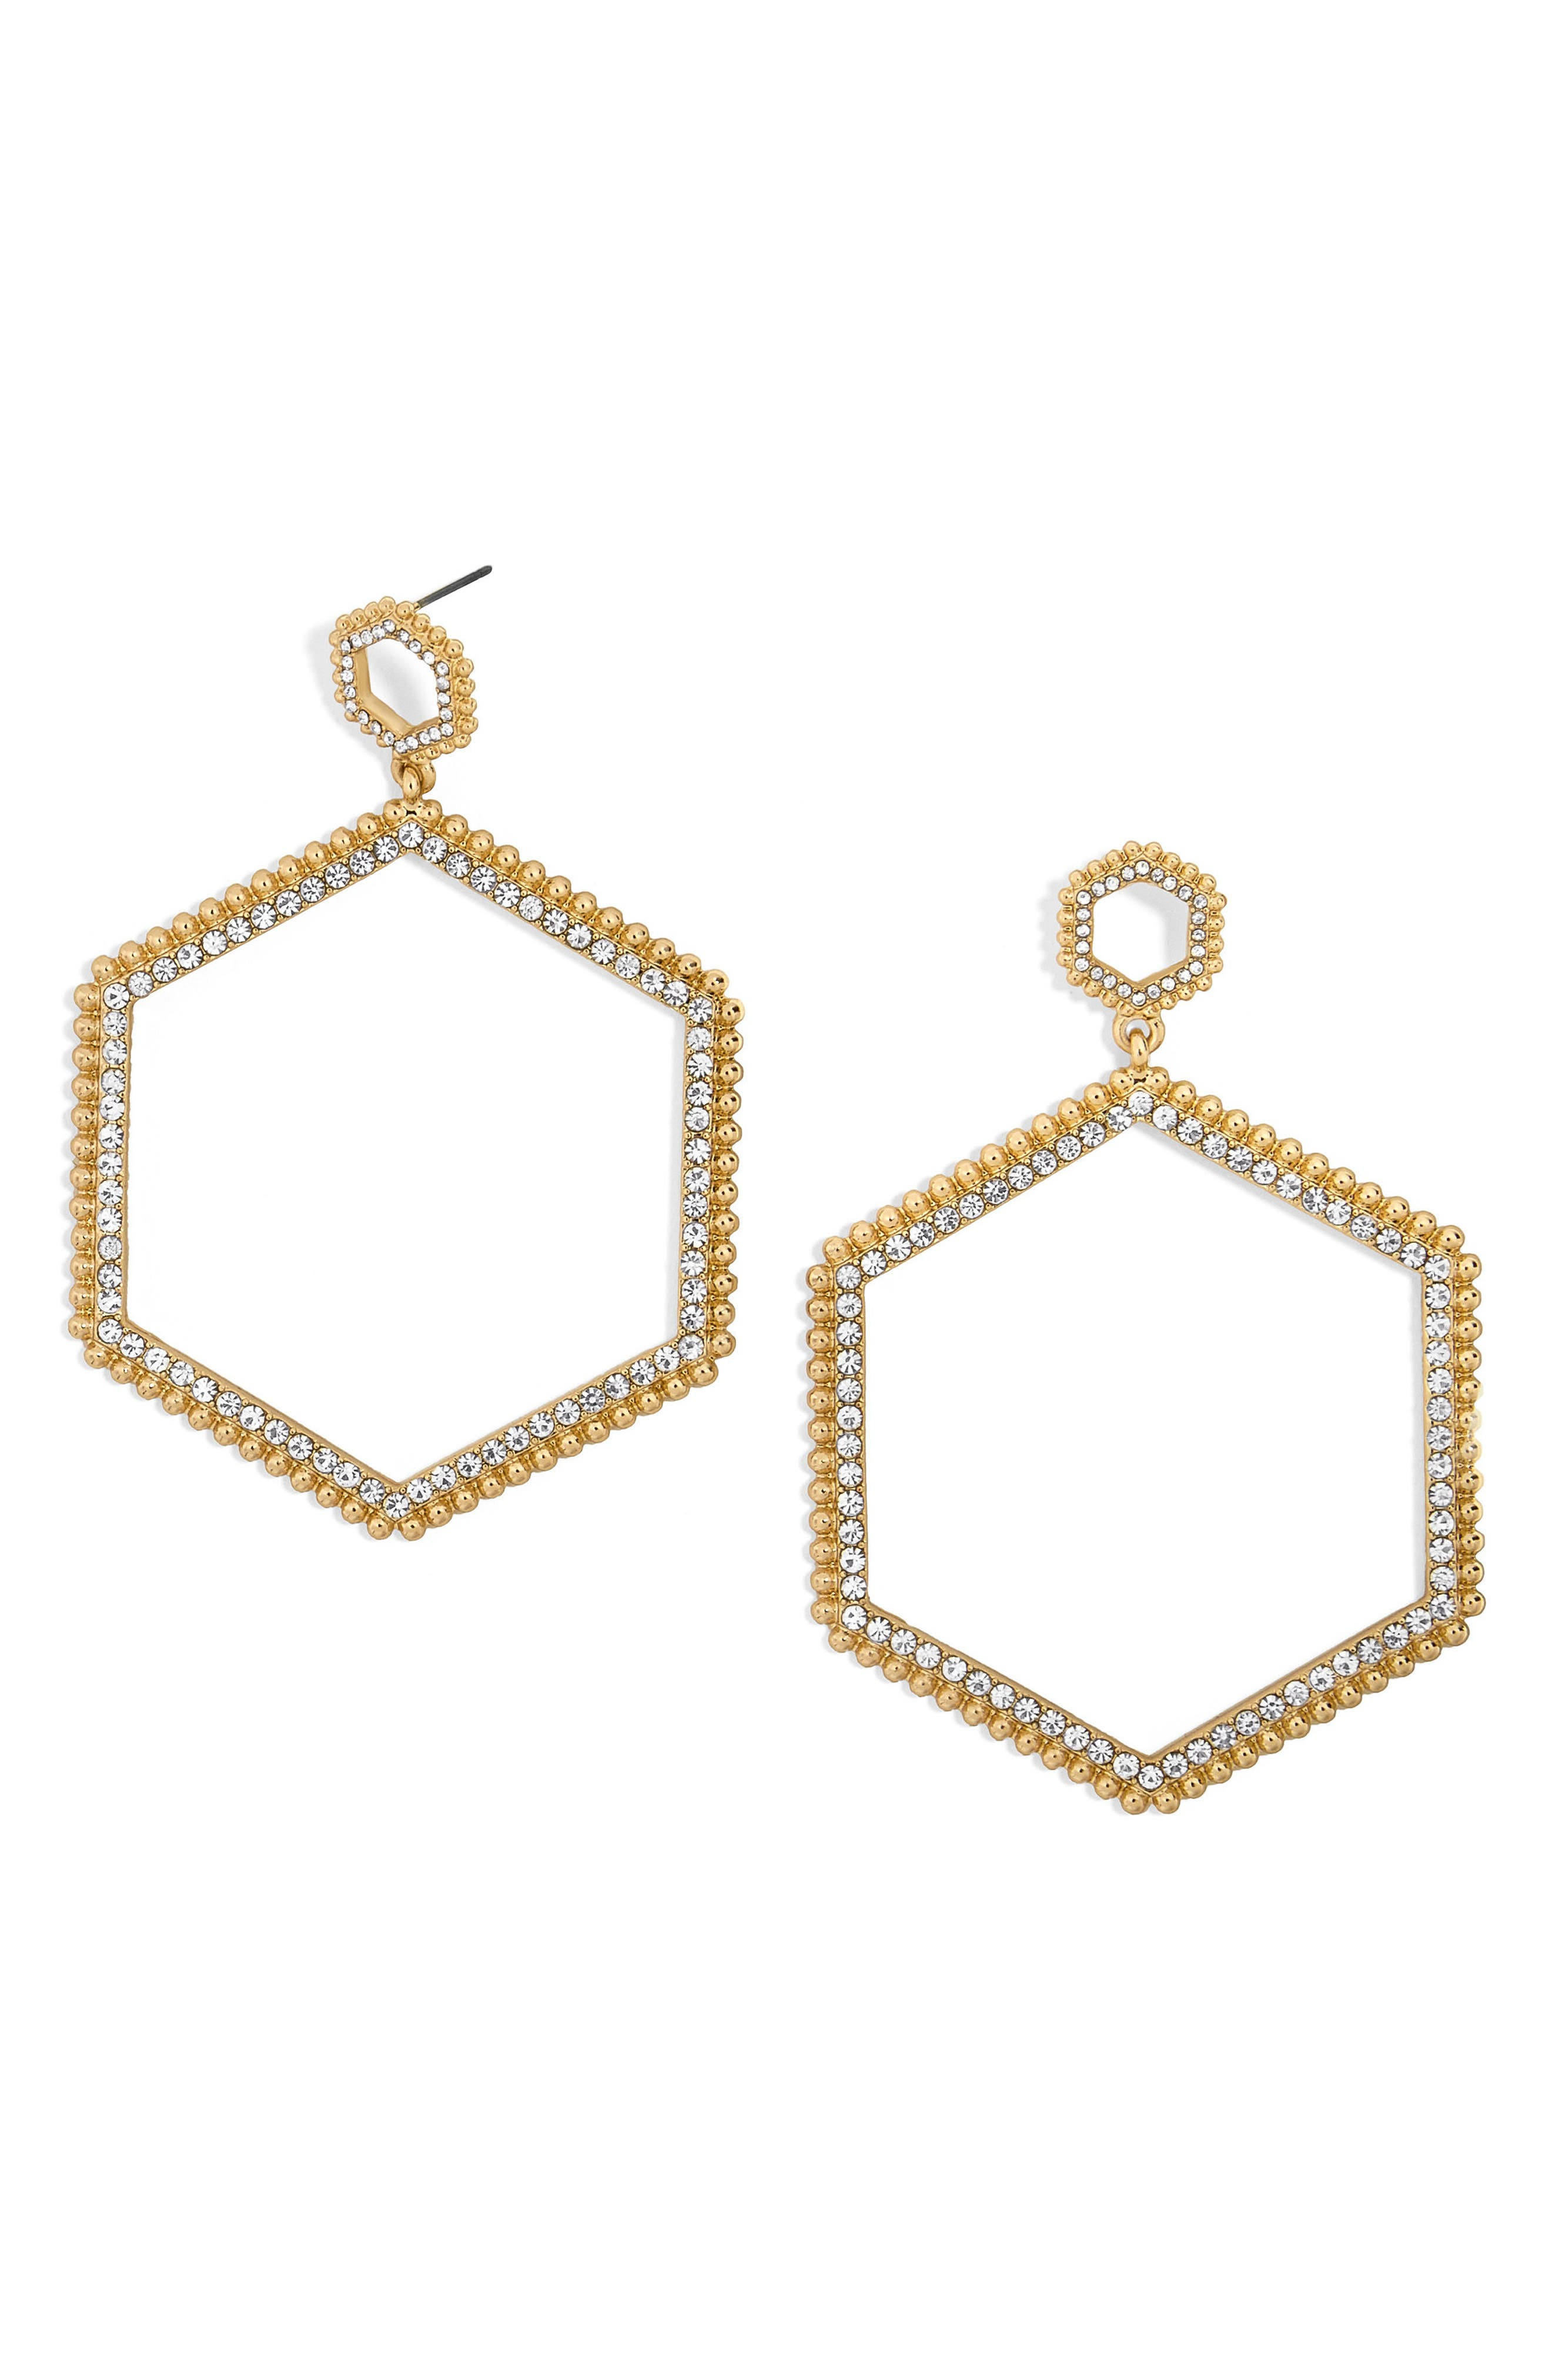 Hexagonal Hoop Earrings,                         Main,                         color,